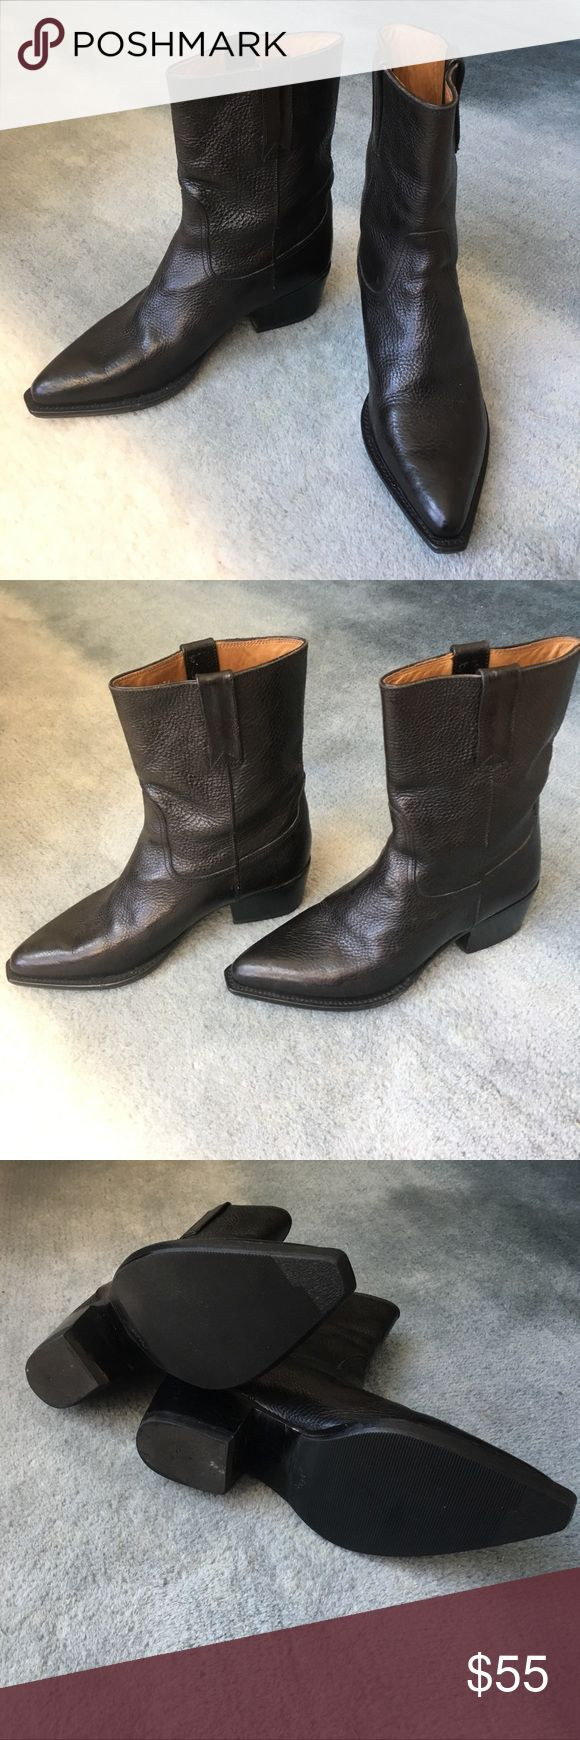 Cole Haan Country Cowboy Boots, 37 B These pebbled black leather boots are by Cole Haan Country. I have the brown pair & love them. For some reason these just never worked into my wardrobe. I maybe wore them 5 times (see soles).                                   Fit true to size.                                                               From a clean, non-smoking home. No box. Cole Haan Shoes